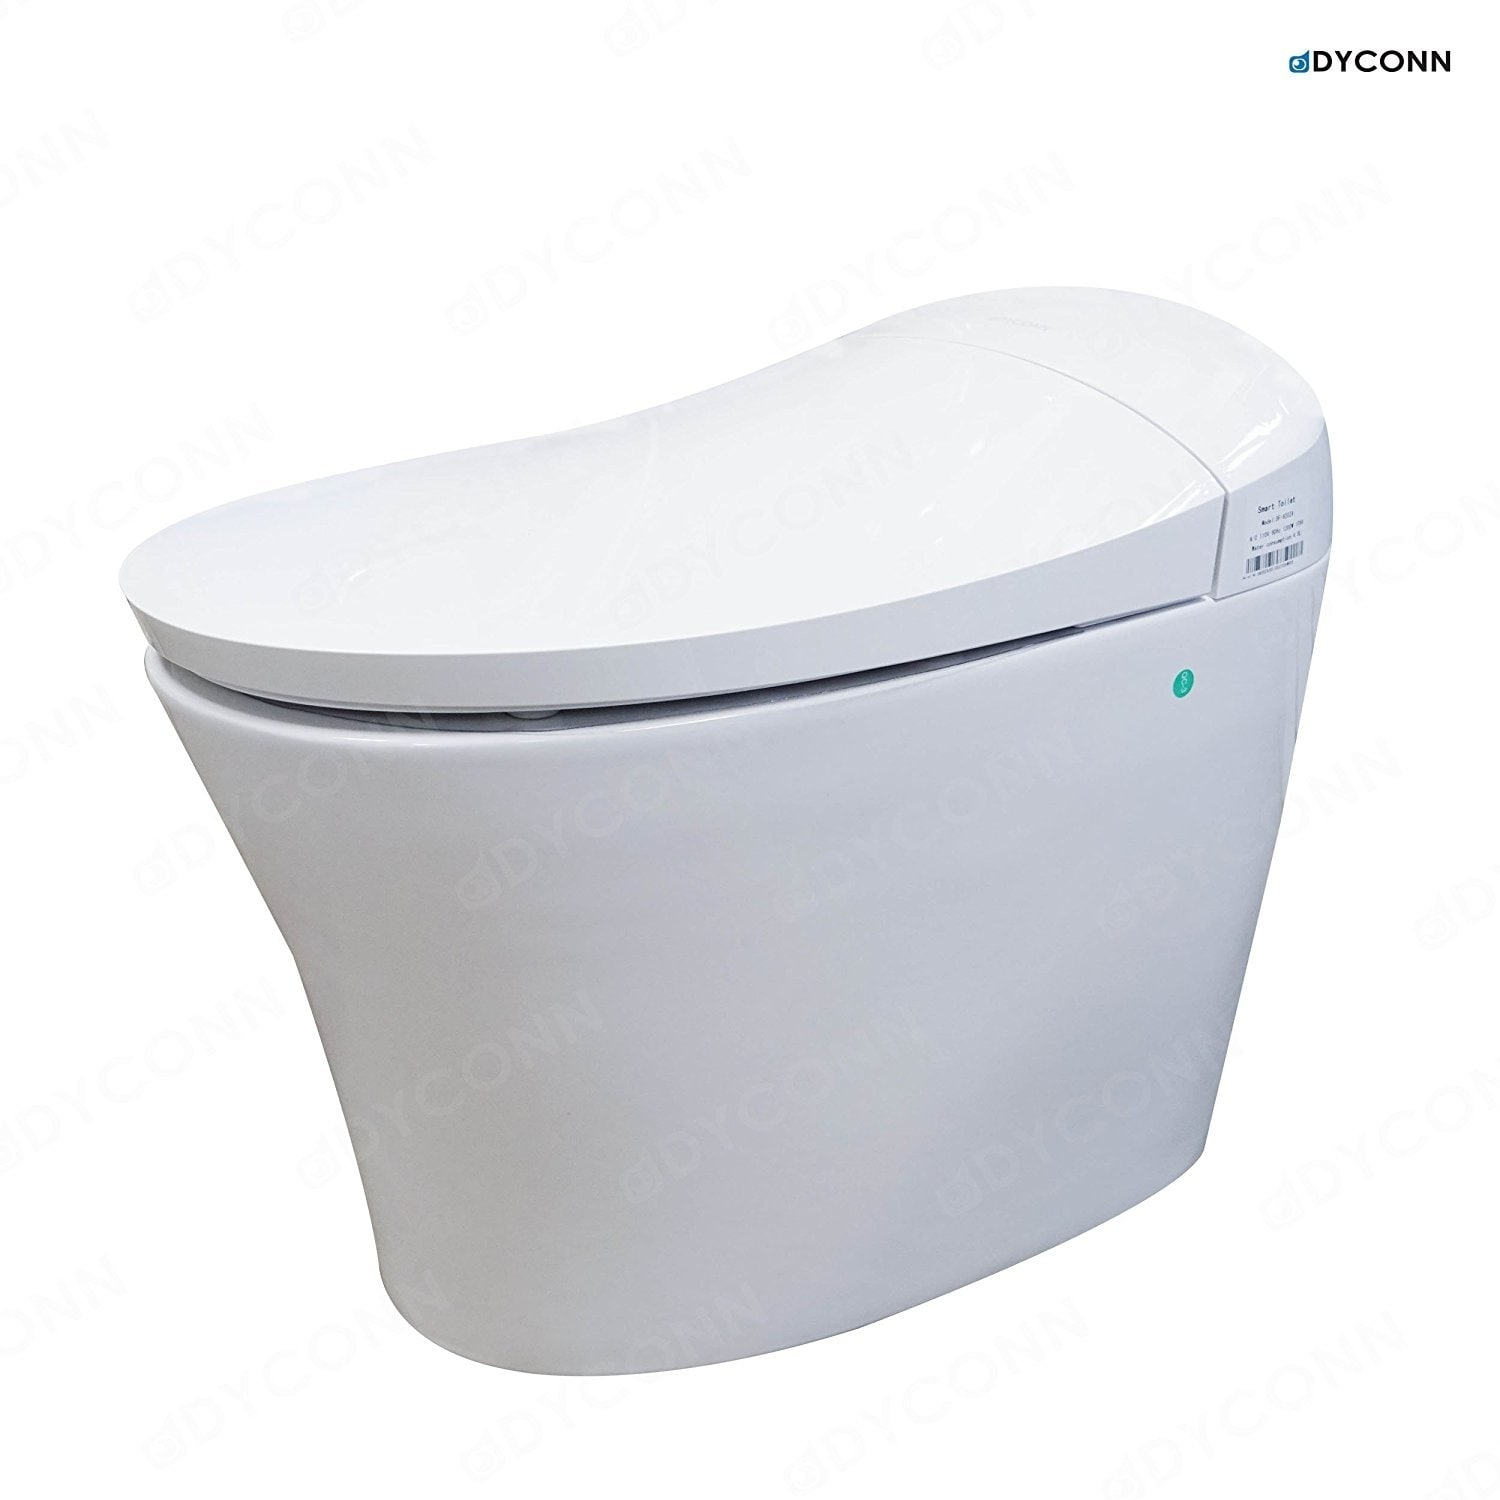 Terrific Dyconn Faucet Arial Tankless All In One Combo Bidet Smart Toilet Uwap Interior Chair Design Uwaporg